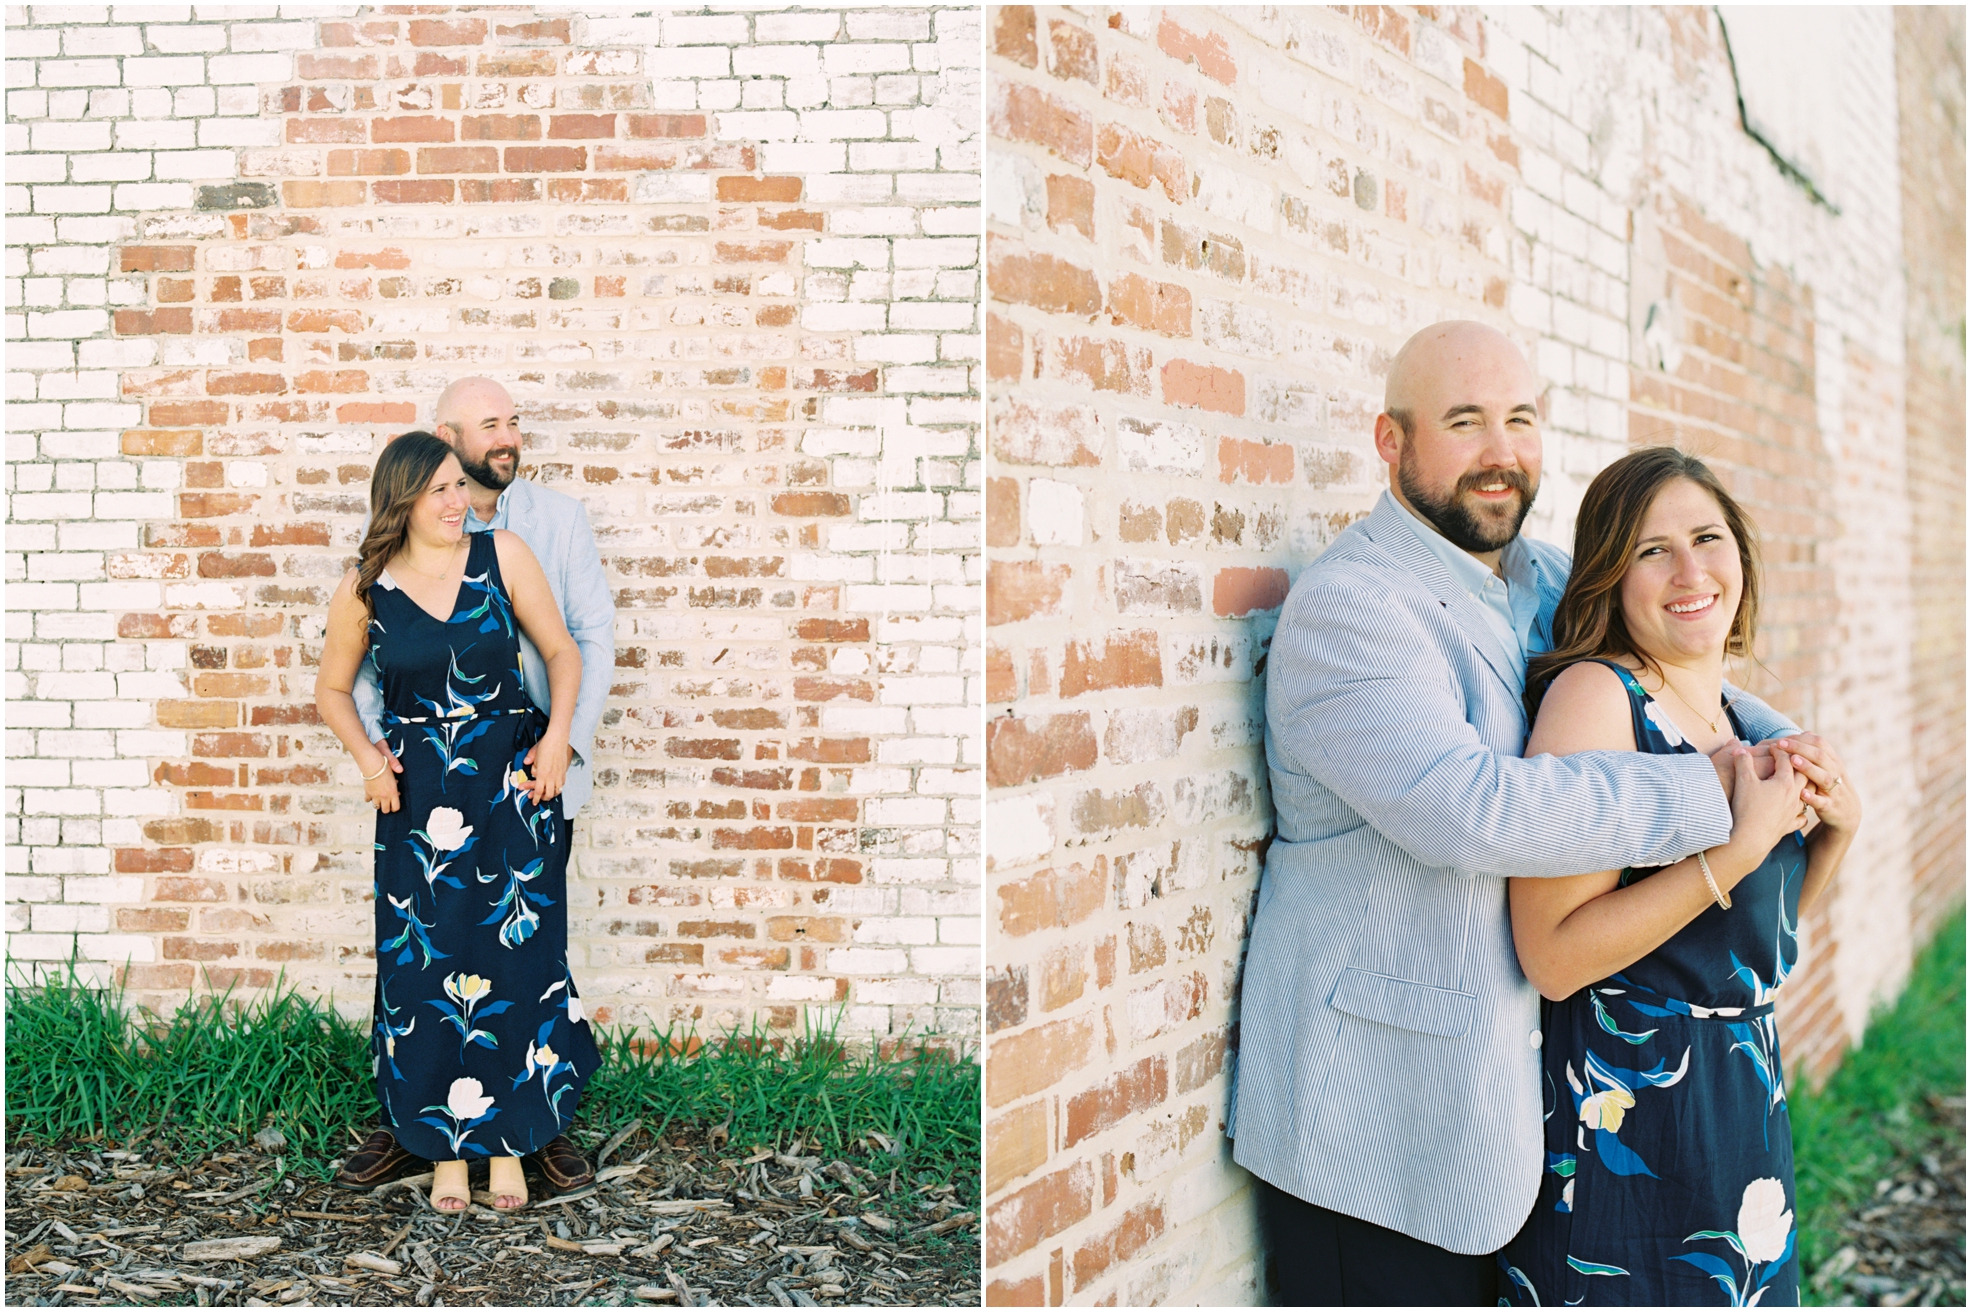 Lisa Silva Photography- Jacksonville, St. Augustine, Amelia Island, Ponte Vedra Beach, North East Florida Fine Art Film Photographer- Engagement Session in Historic Downtown Fernandina Beach- Amelia Island Wedding Photographer_0011.jpg